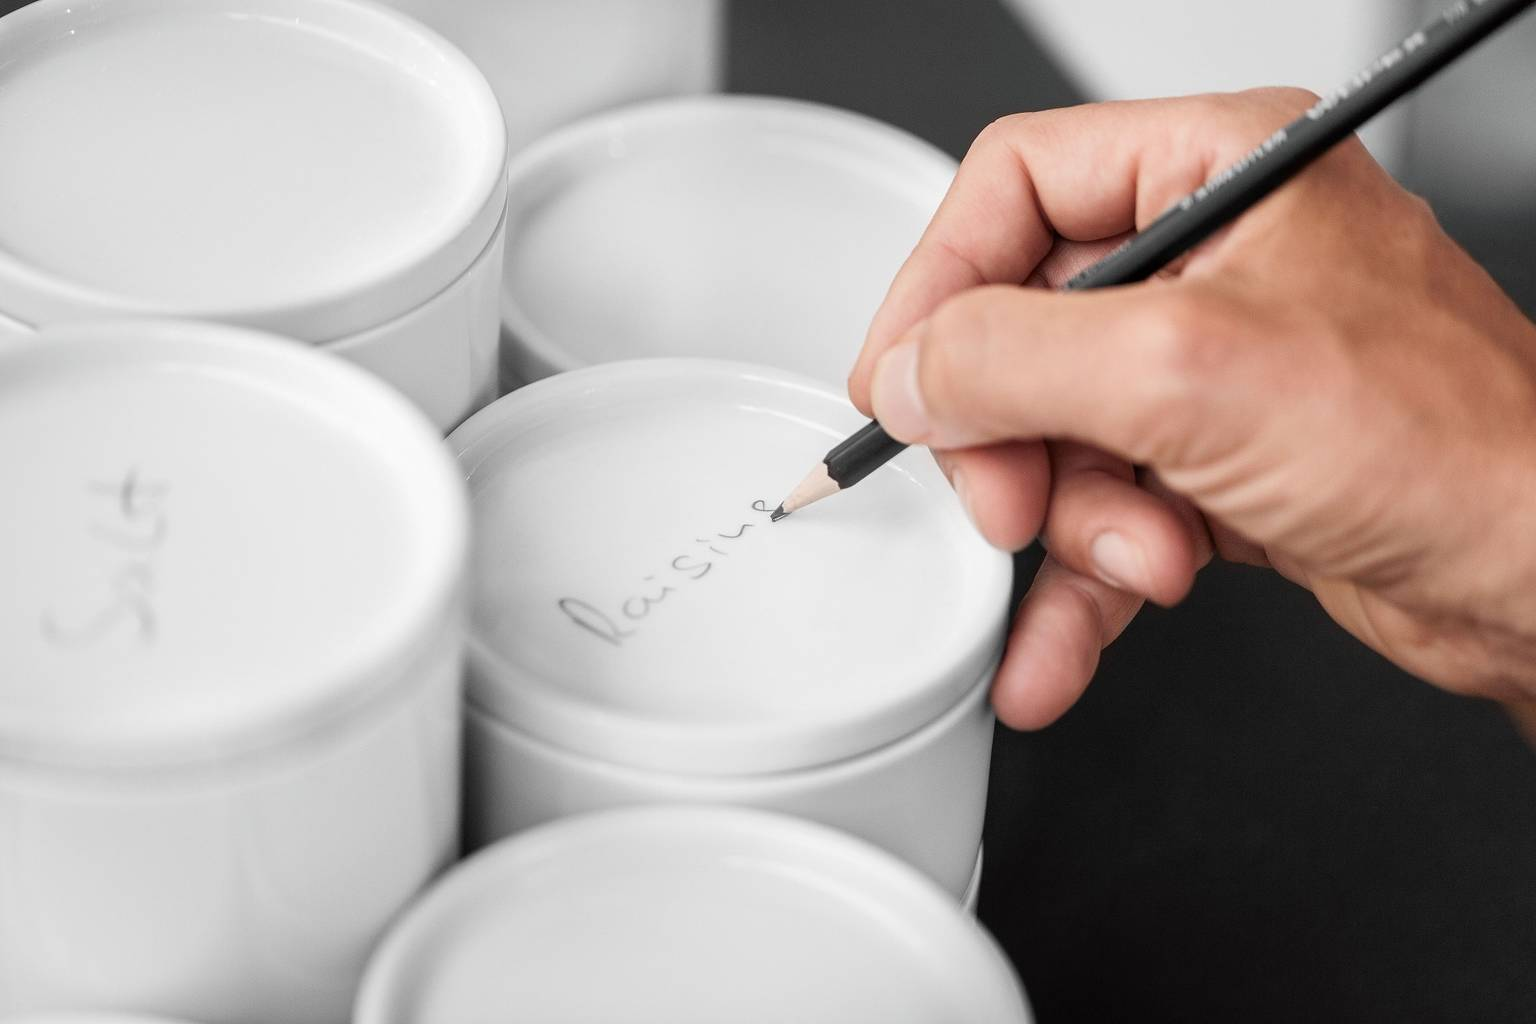 White SieMatic porcelain containers individually labeled in pencil